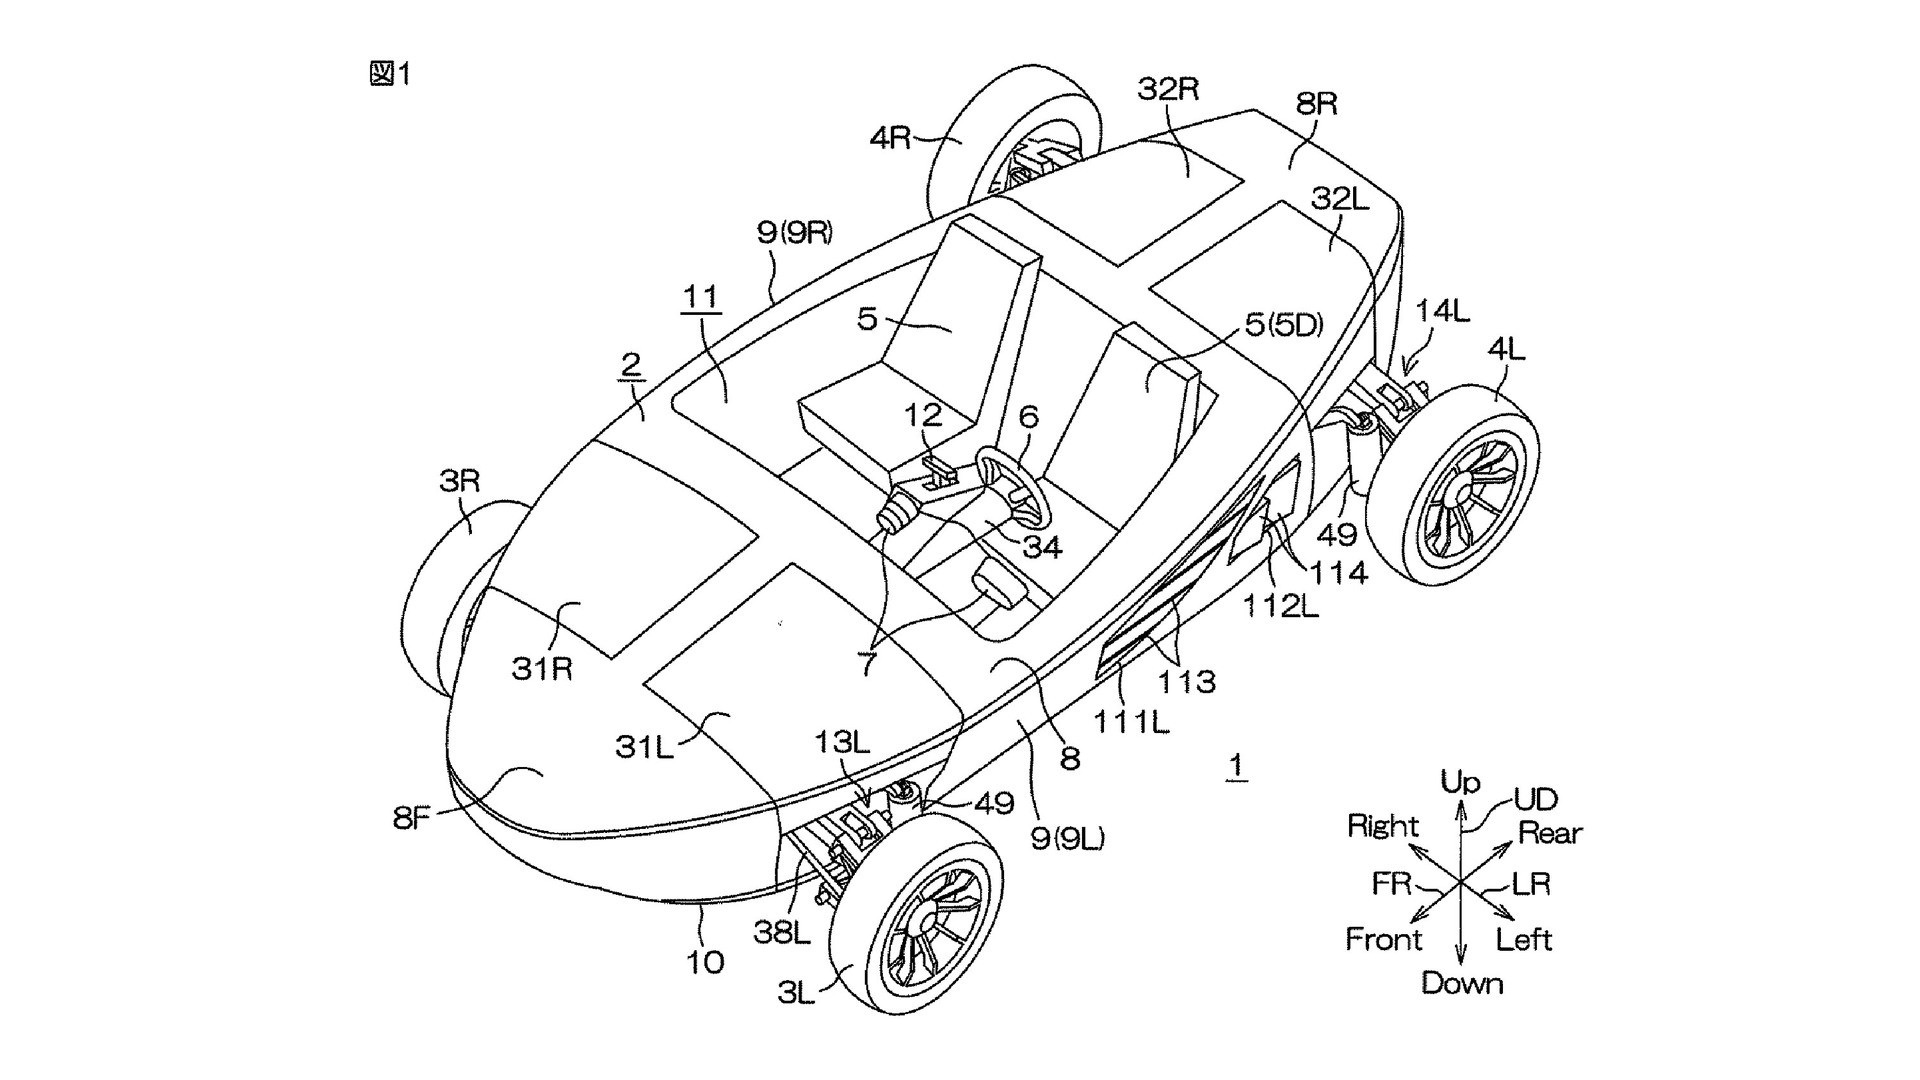 yamaha-amphibious-car-patents-surface_10 Raptor R Wiring Diagram on turbocharged yamaha, full suspension, se heel guards for sale, white blue yamaha, fuel line replacement,